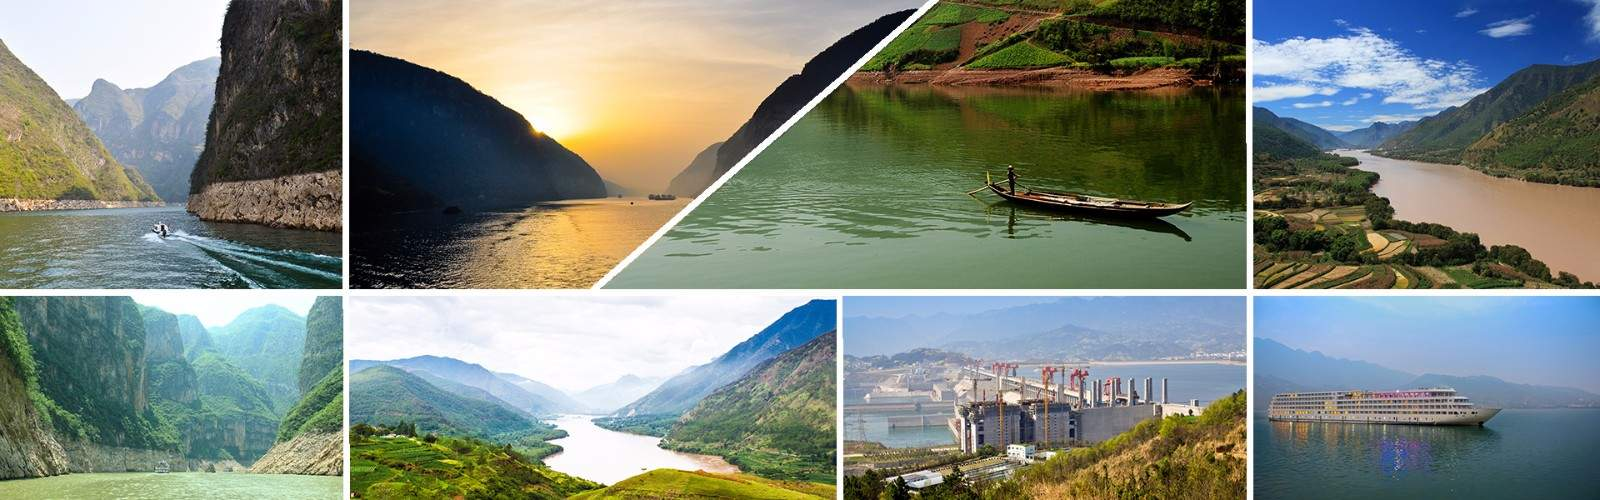 Wendy Wu Tours The Yangtze River Holidays